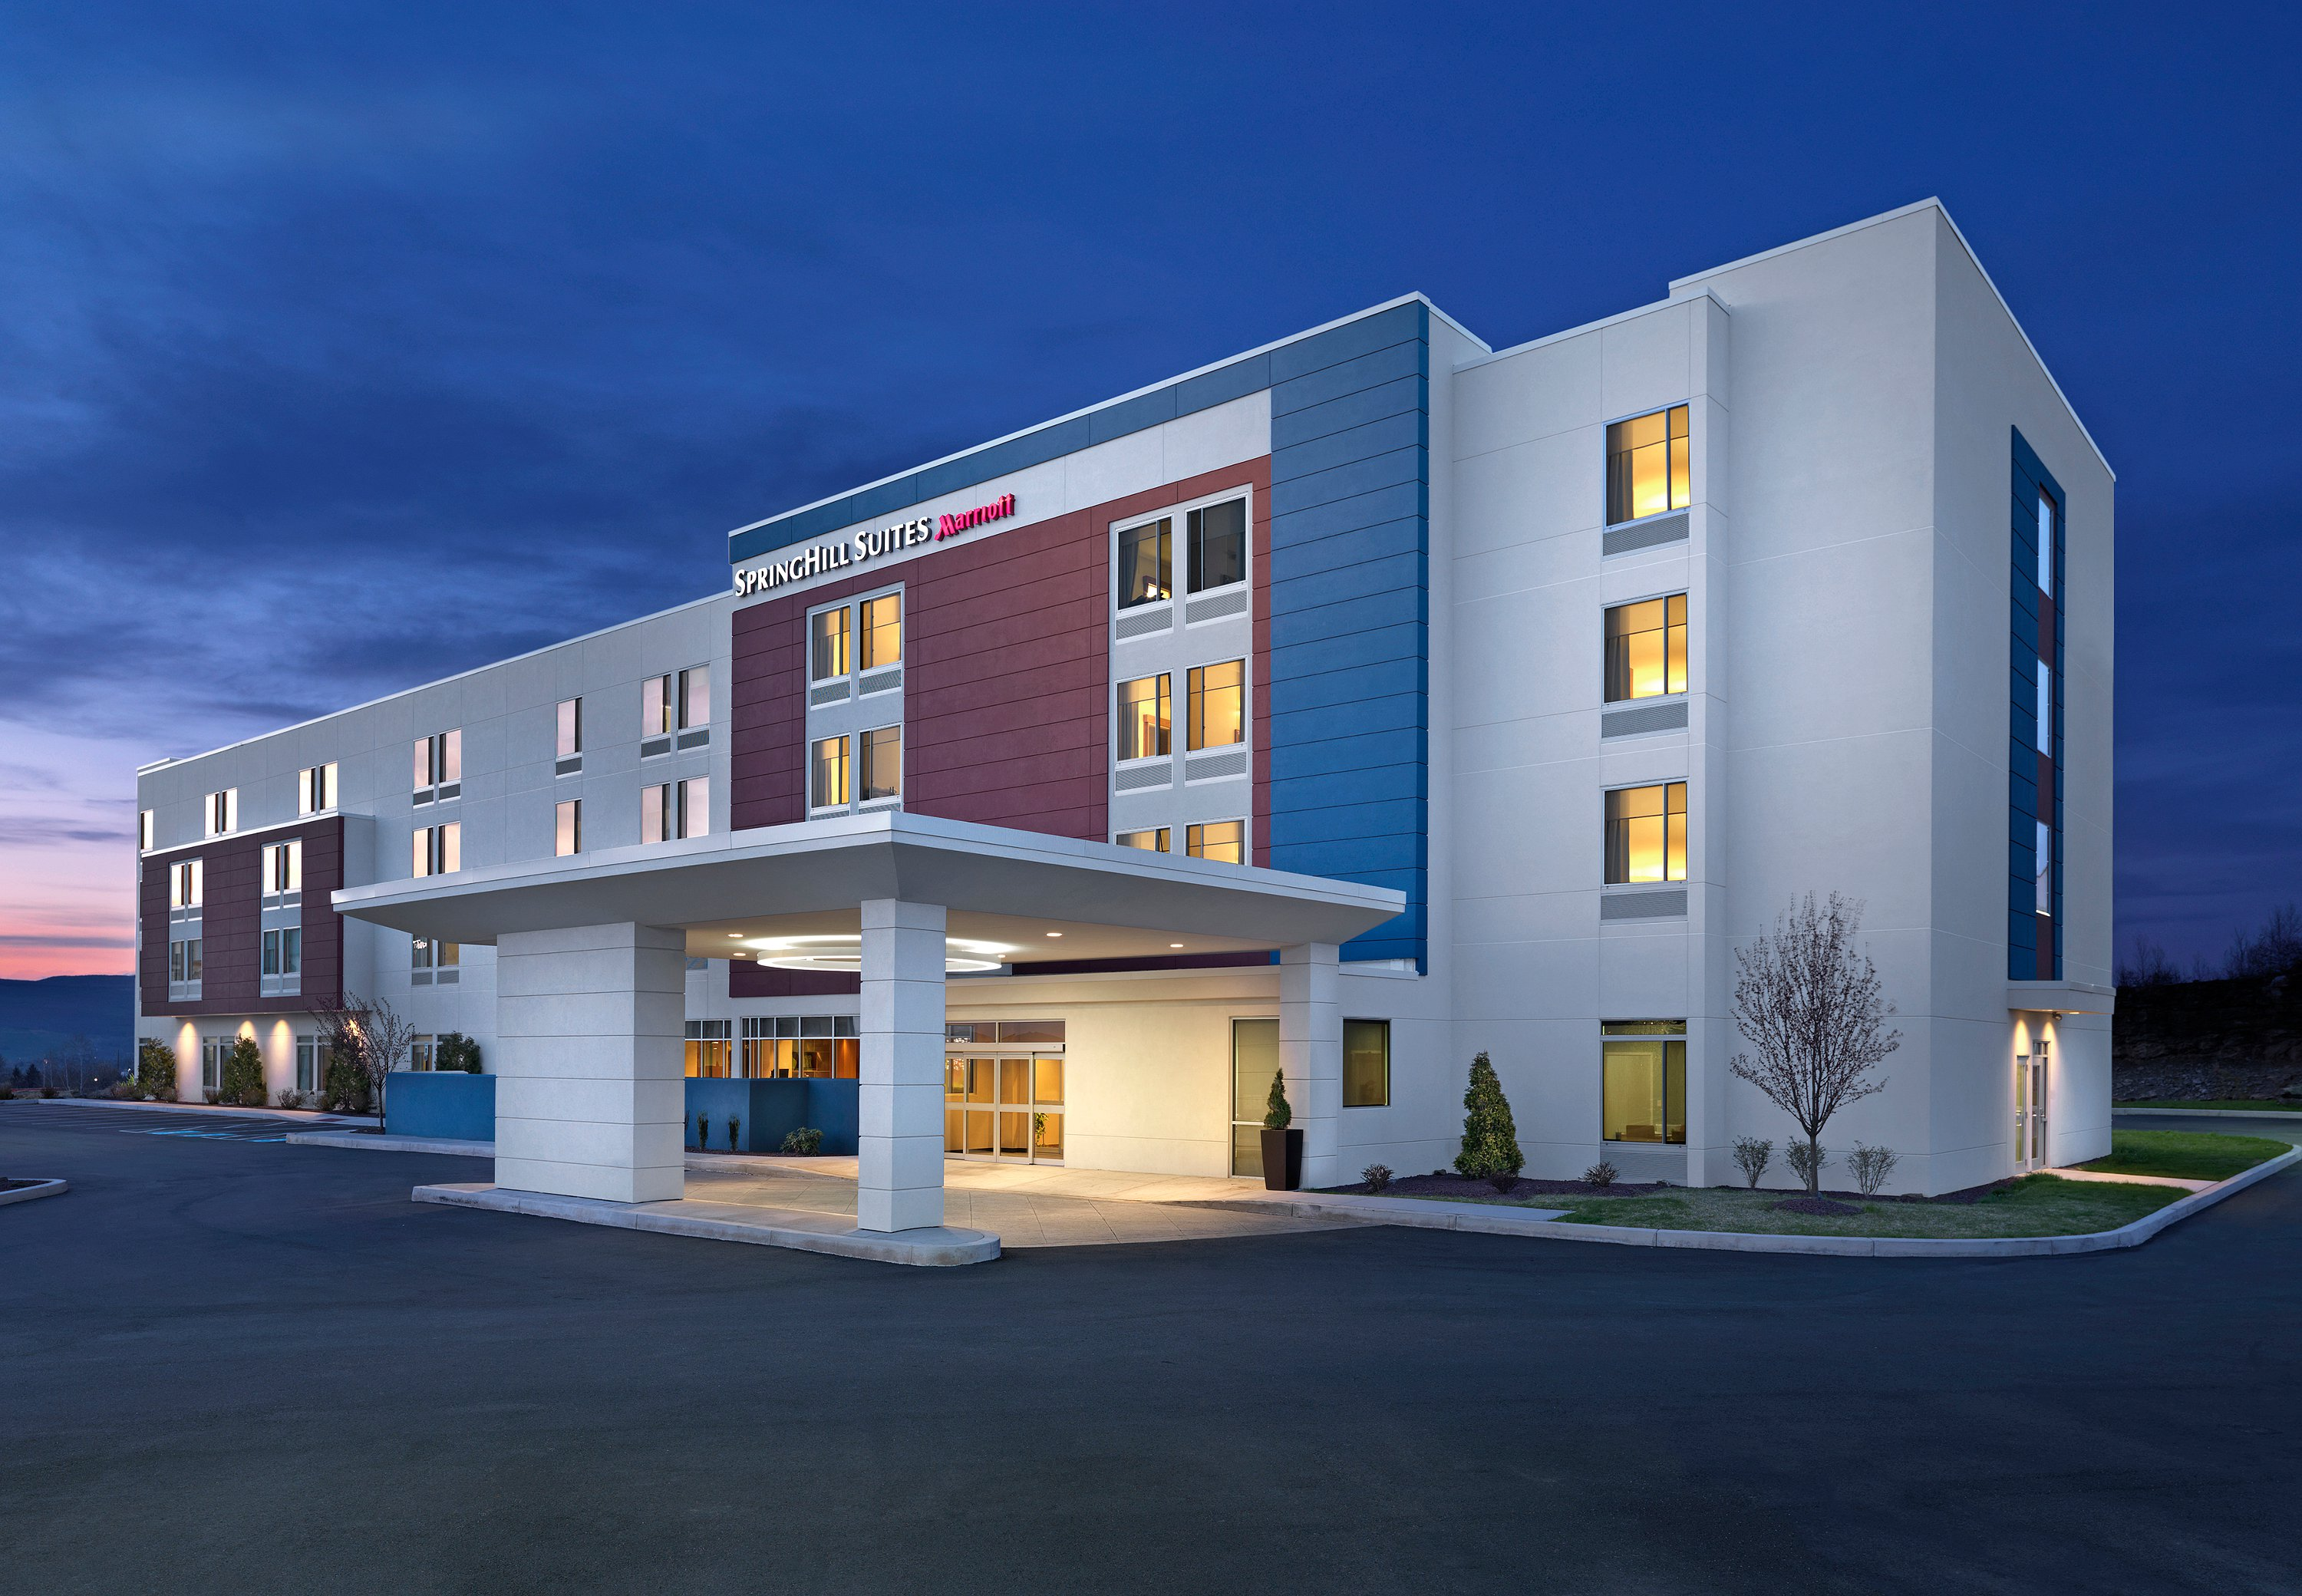 SpringHill Suites by Marriott Denver Tech Center image 0